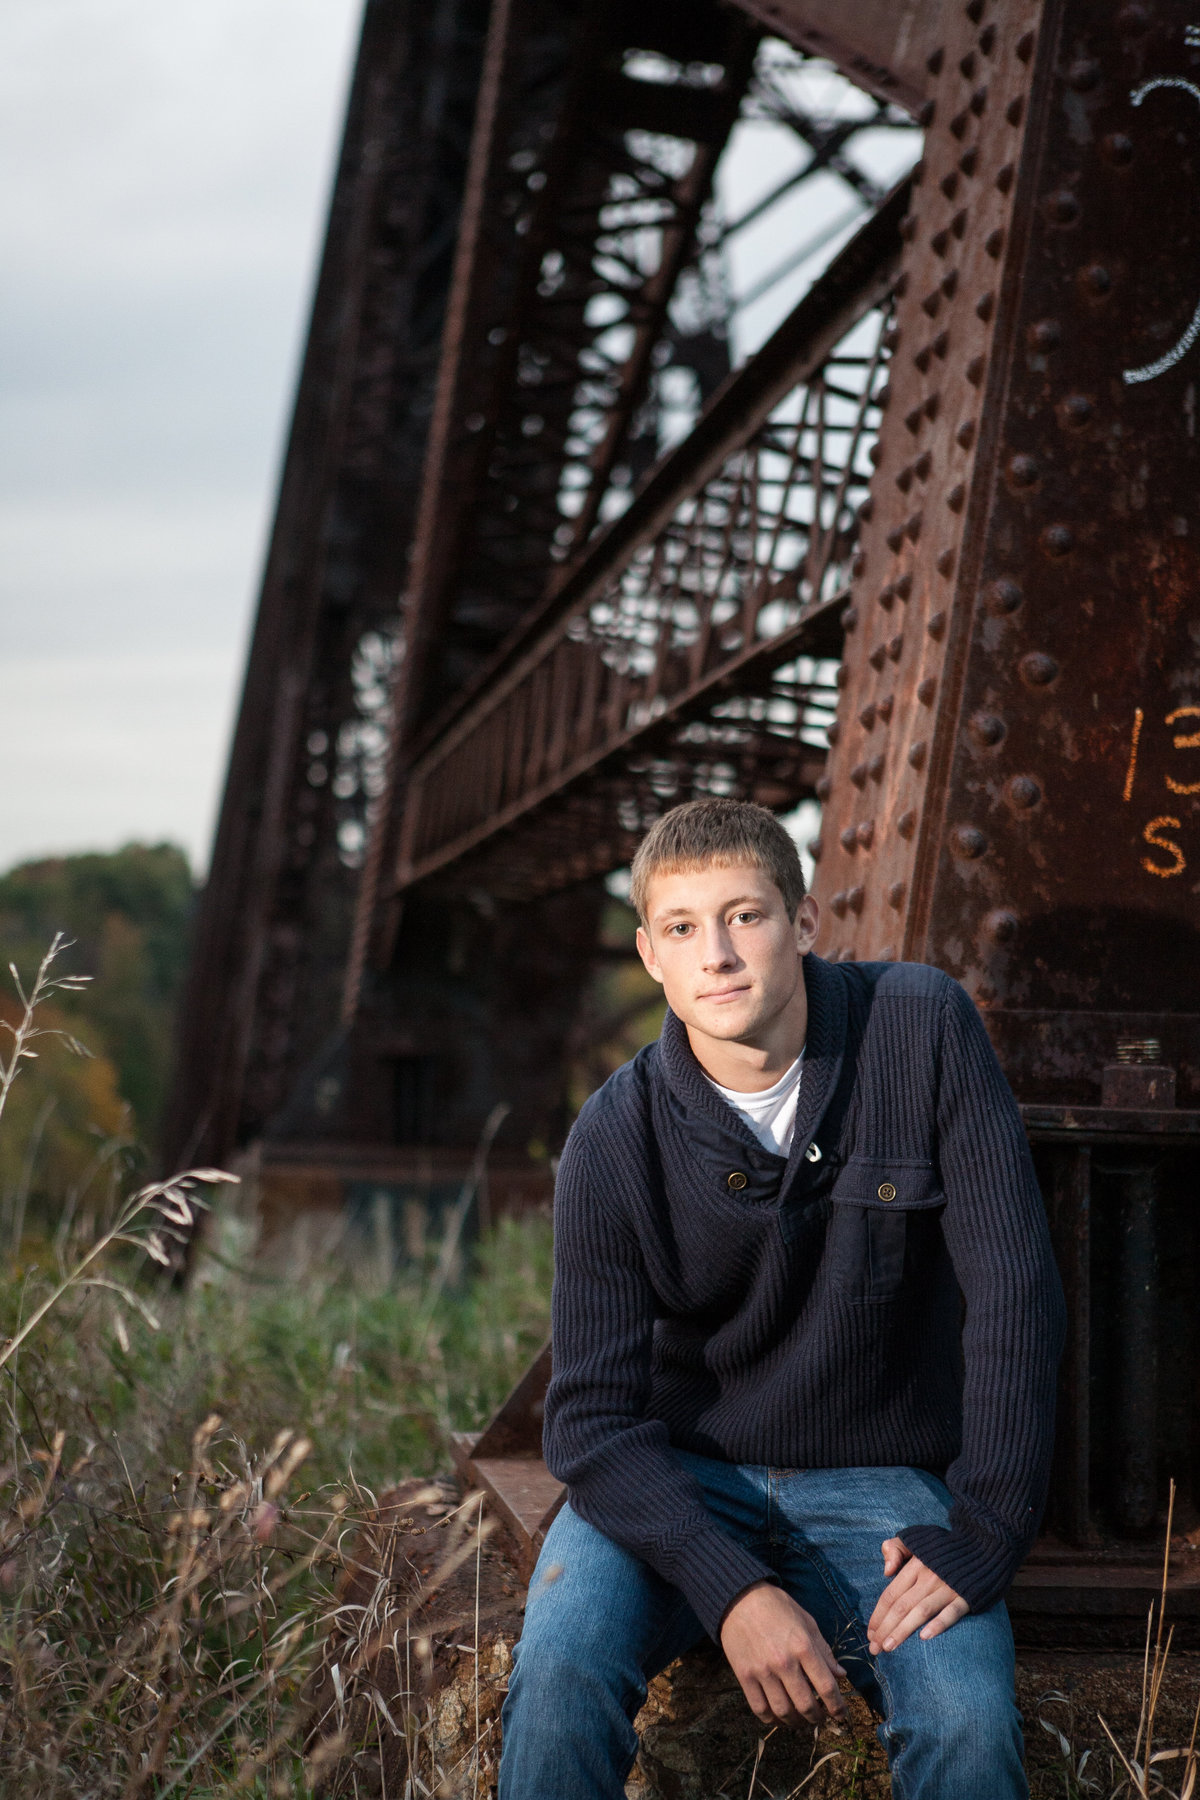 Outdoor high school senior portrait photographer casual photos in the Hudson Valley NY